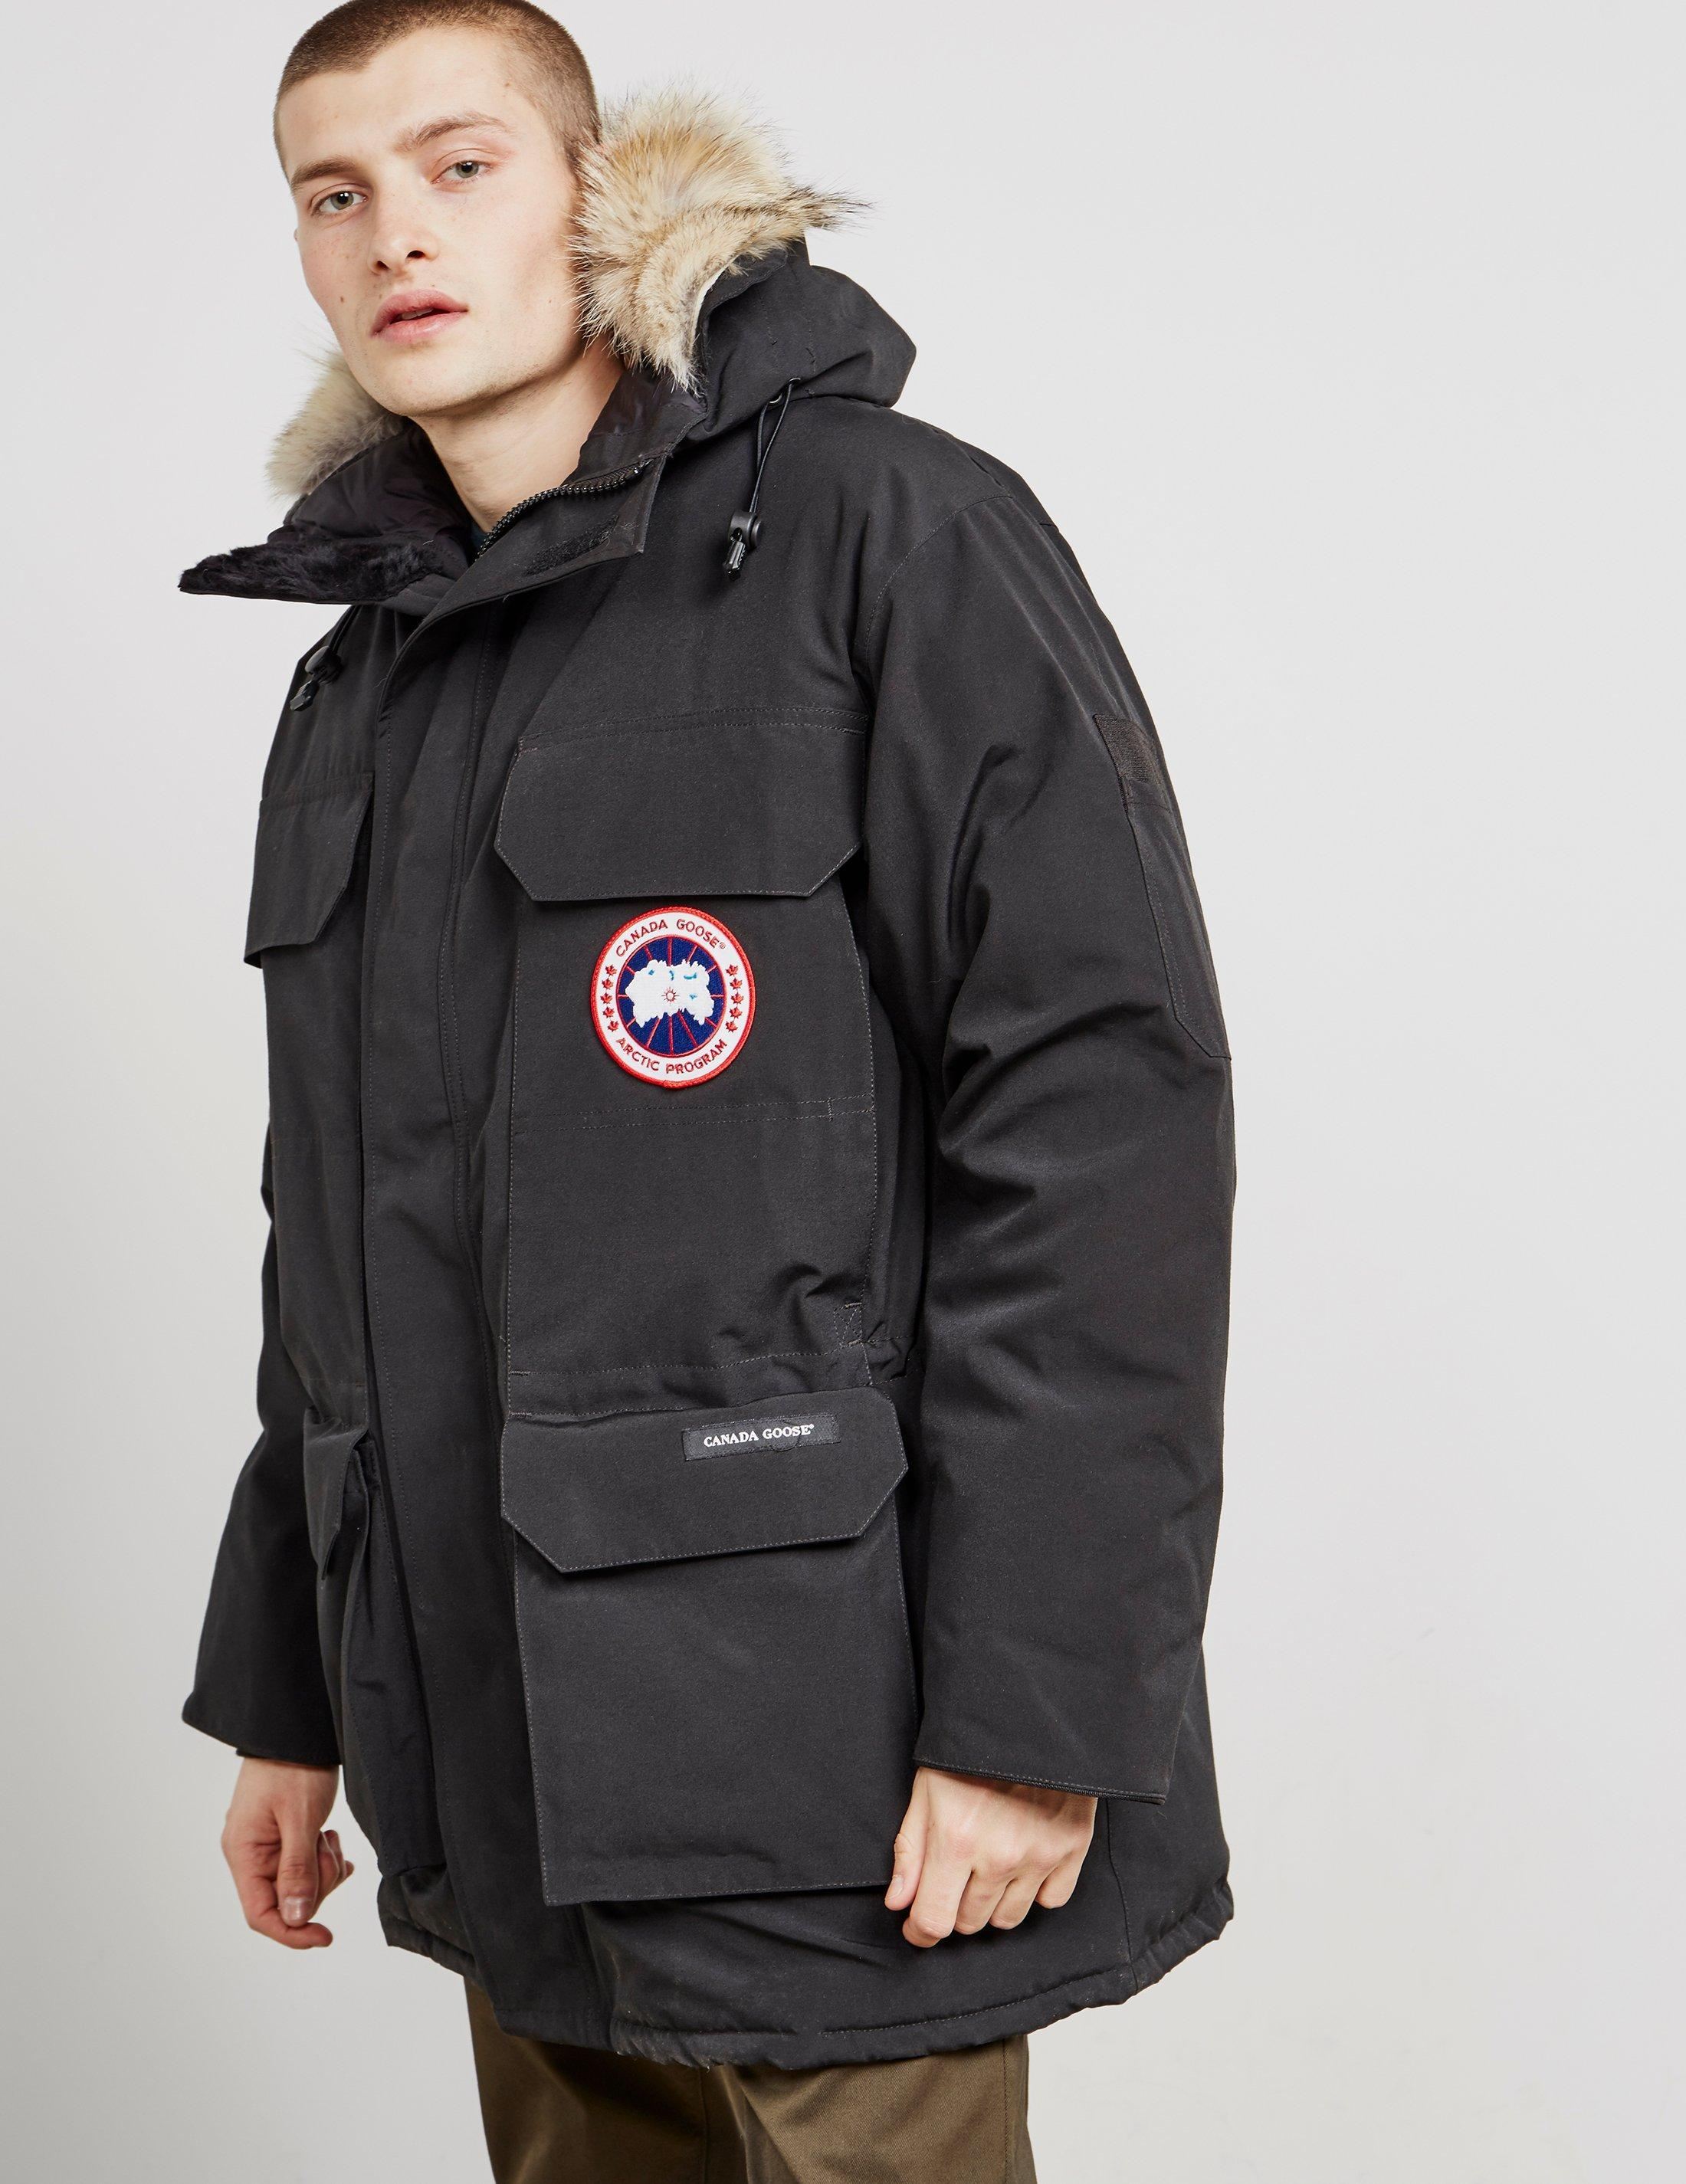 81477f8854c4 Canada Goose Expedition Padded Parka Jacket Black in Black for Men - Save  5% - Lyst